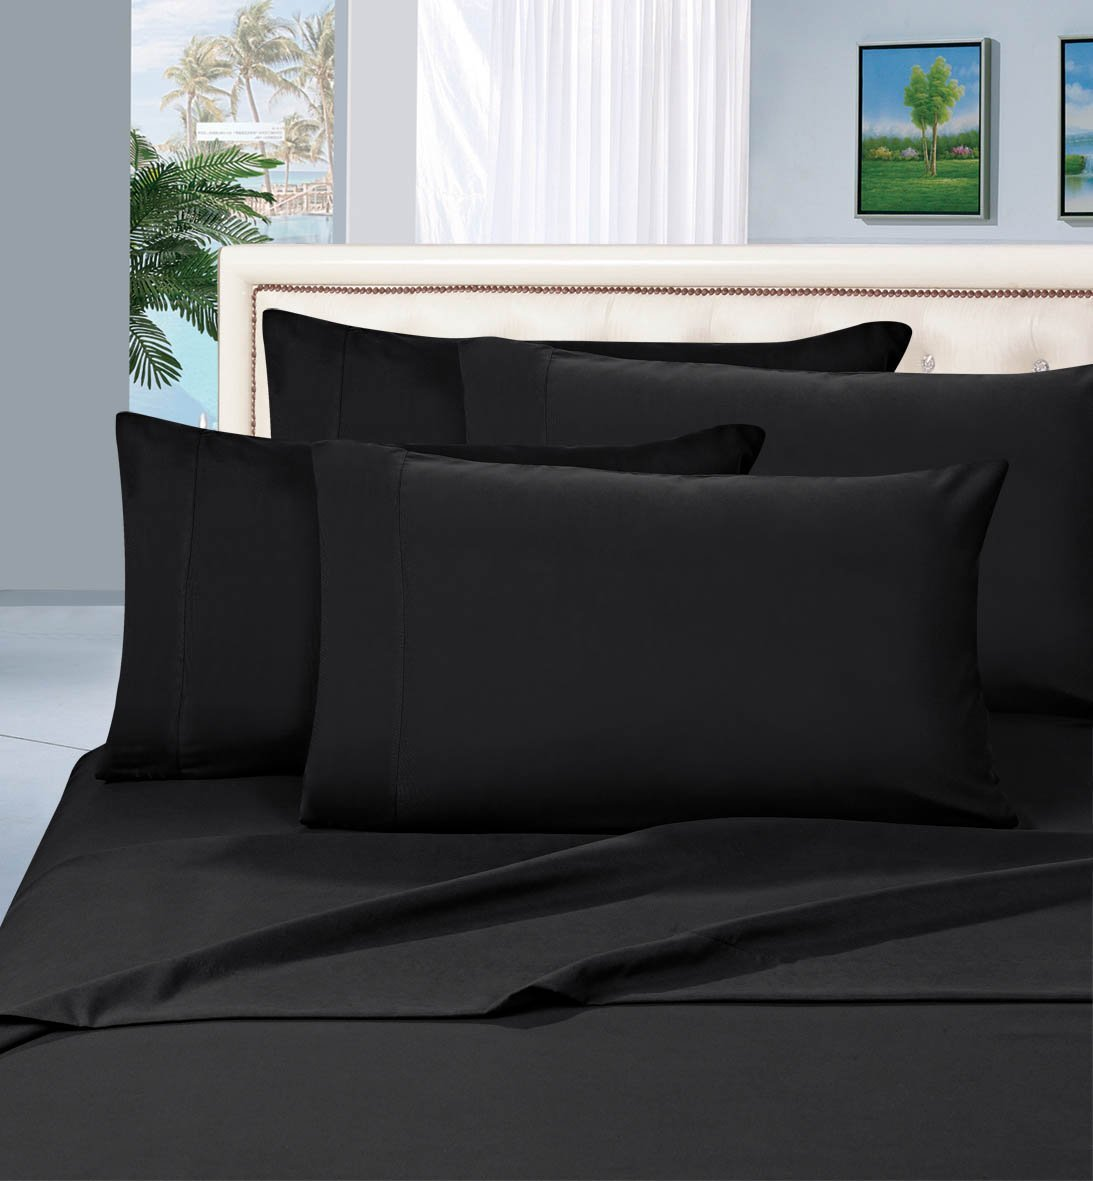 Elegance Linen® Wrinkle Resistant  6-Piece Bed Sheet Set - 1500 Thread Count  Silky Sof tSheet Set - Queen, Black